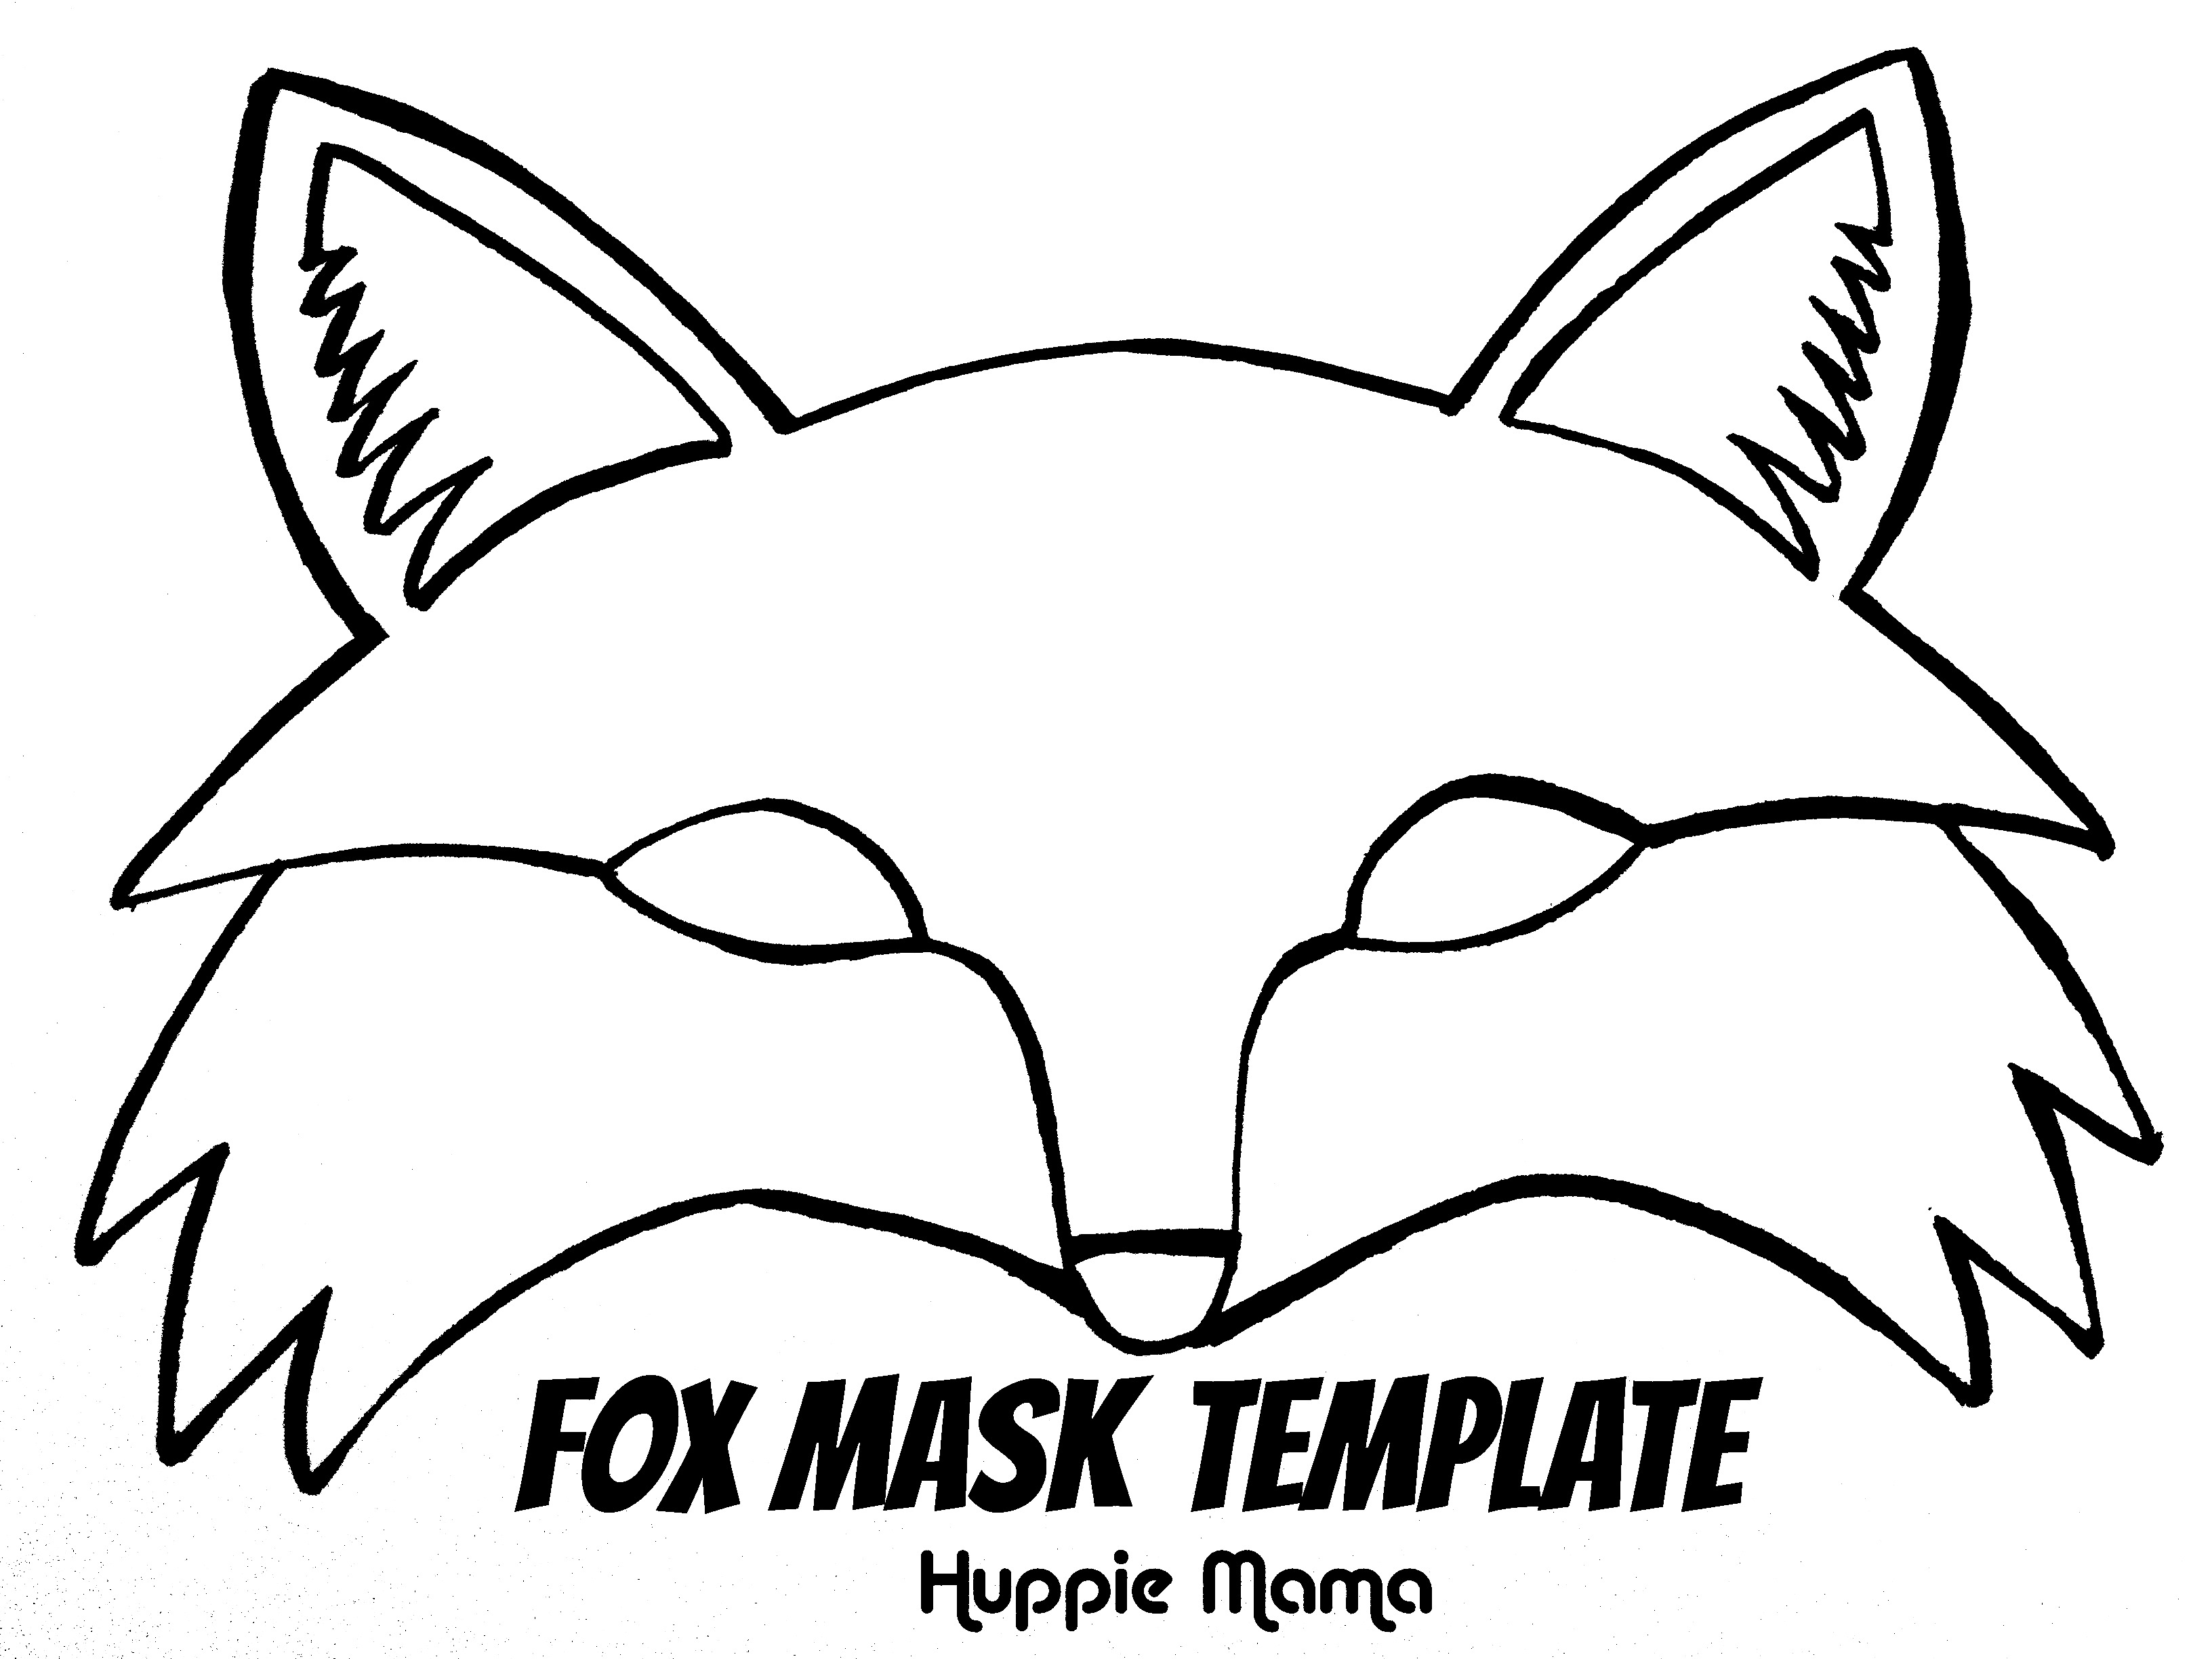 Lively image with regard to fox mask printable